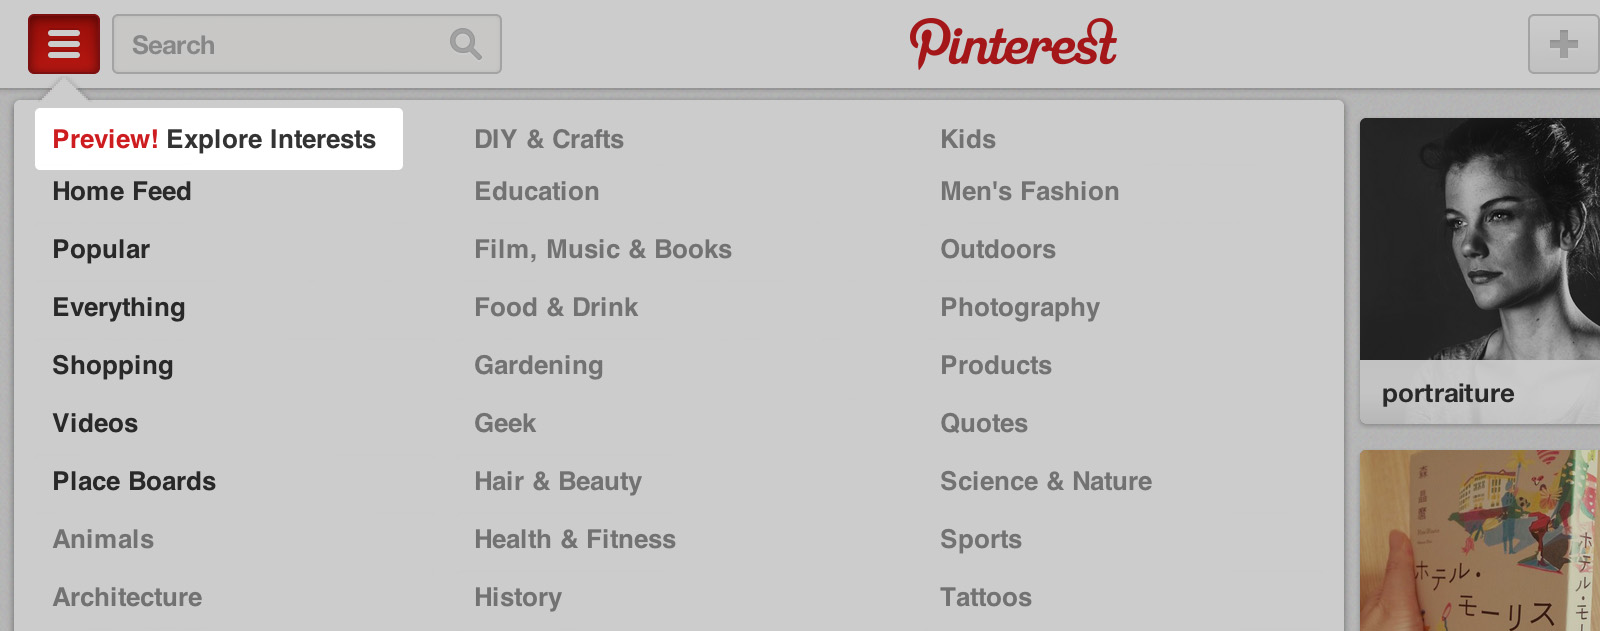 2014012706 Pinterest launches Interests, a tool to let users explore topics and find pins they like